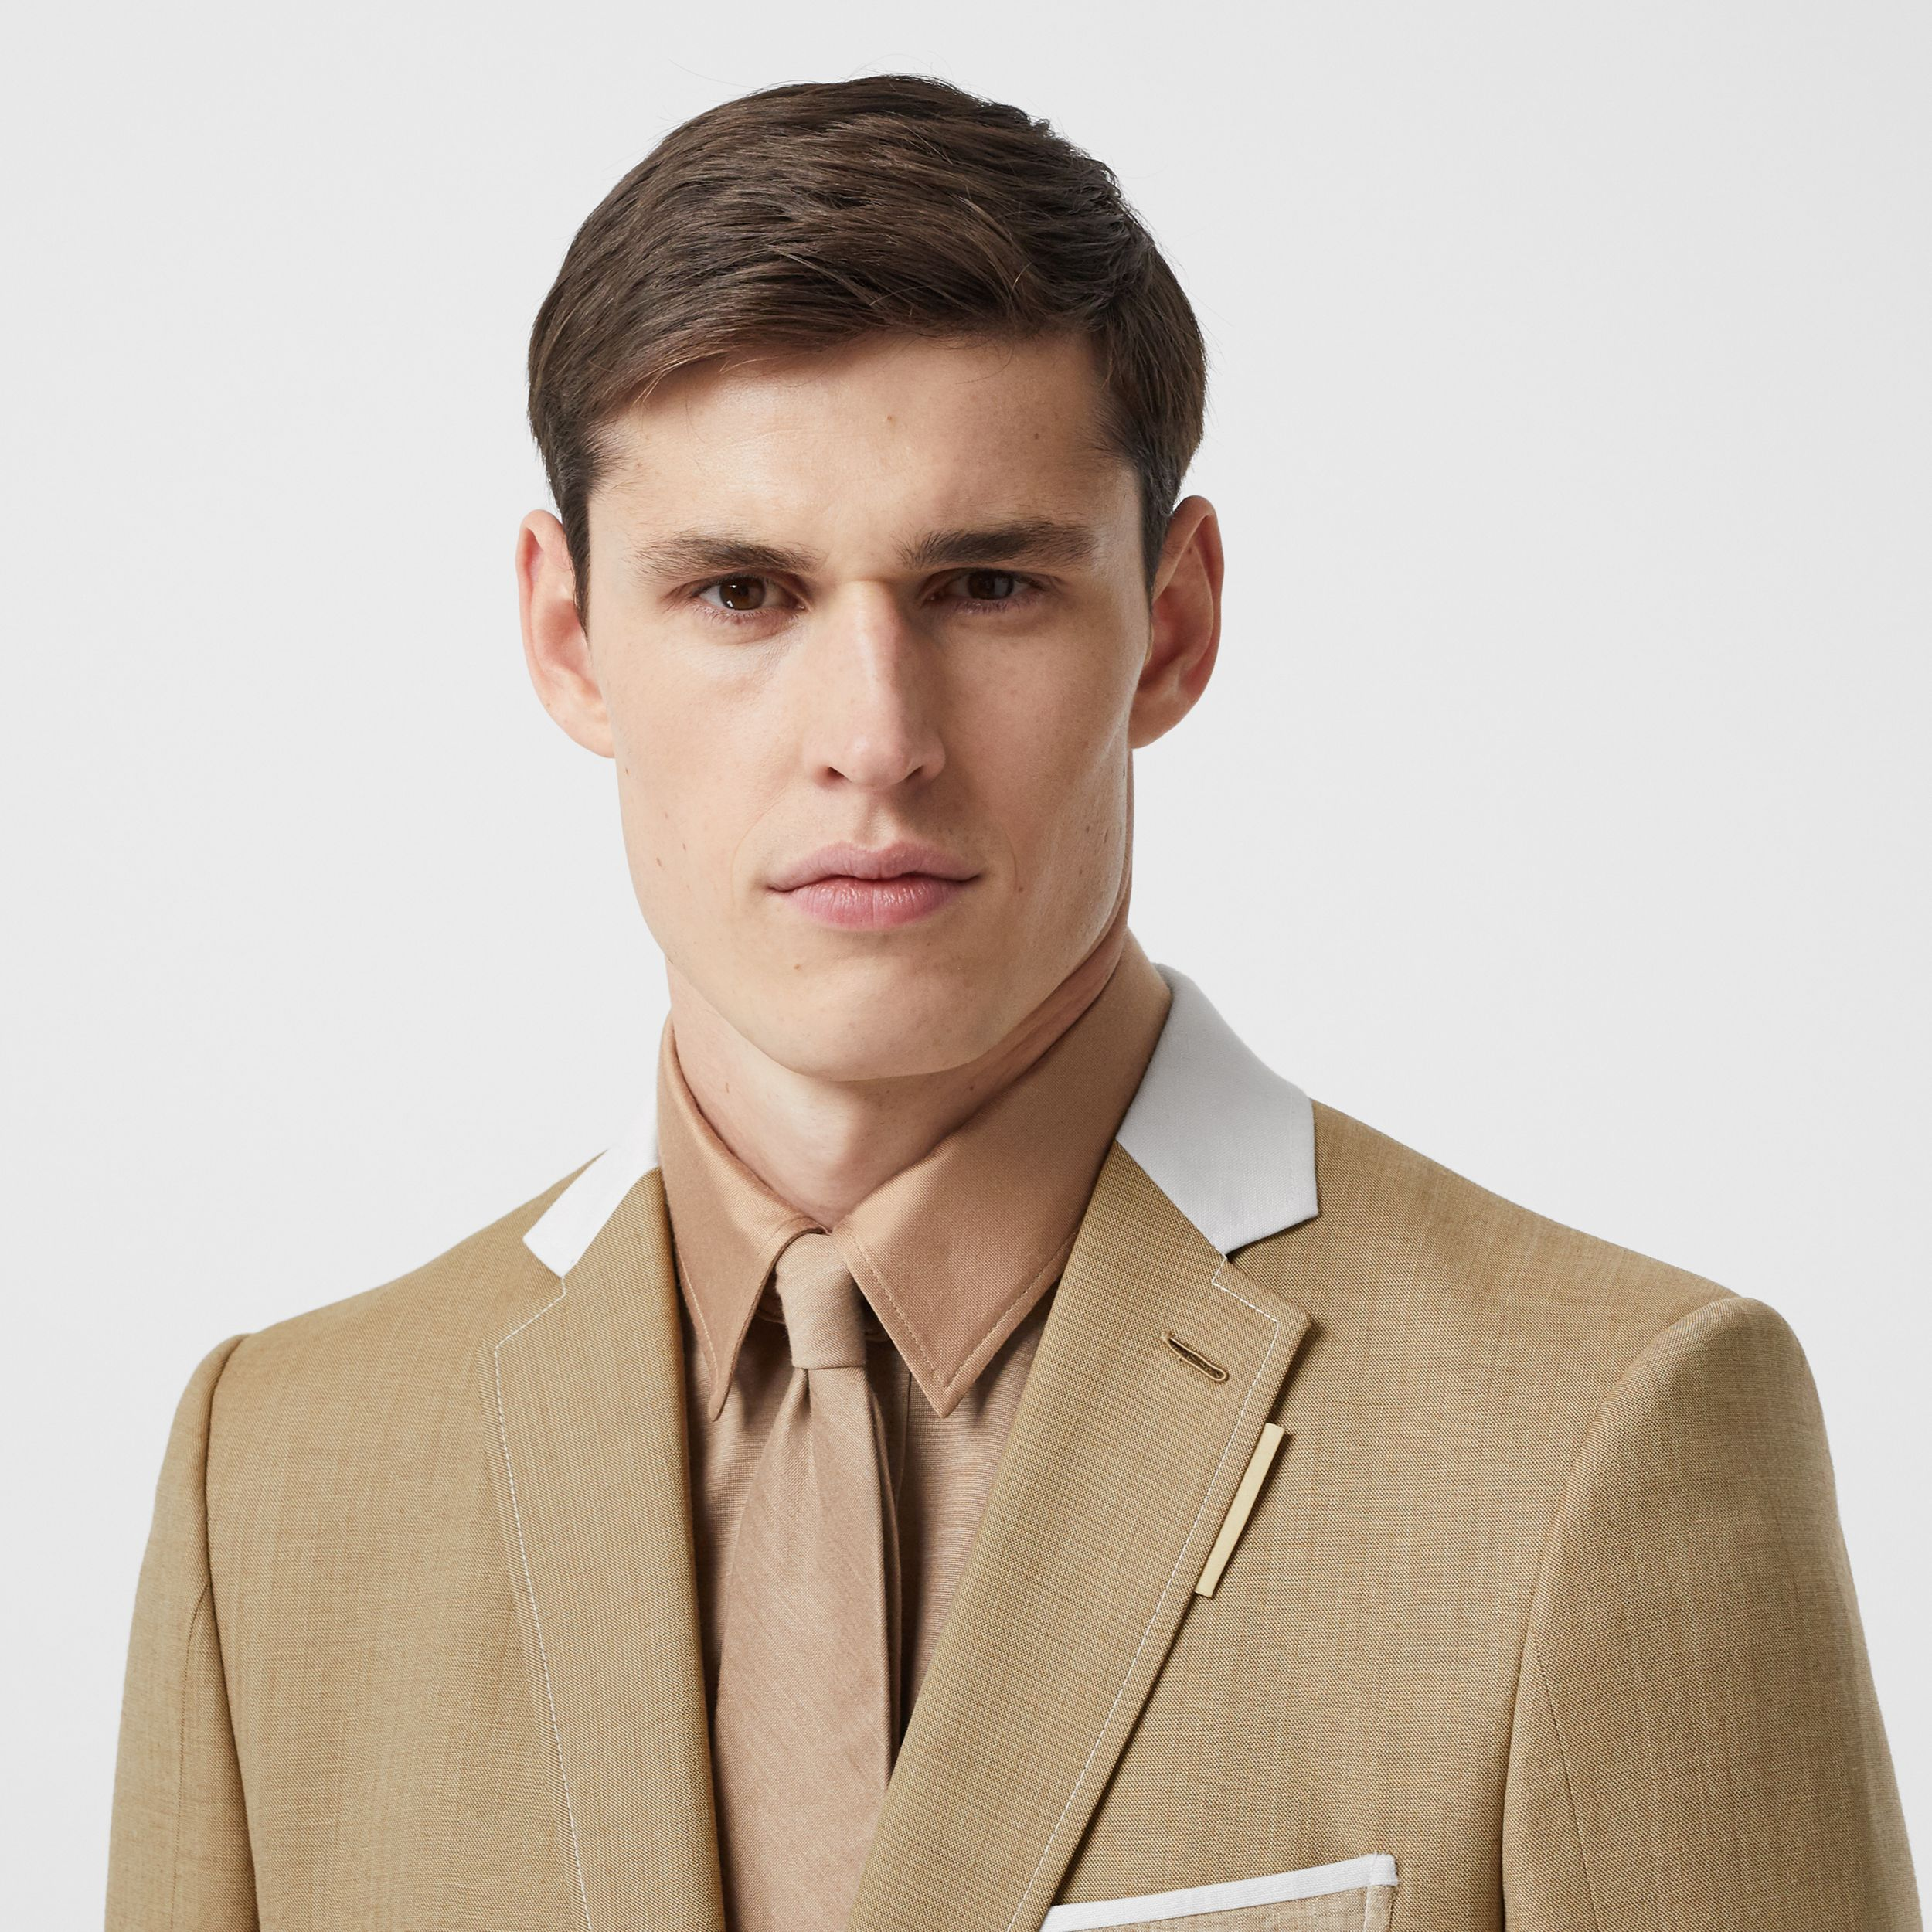 English Fit Wool Cashmere and Linen Tailored Jacket in Pecan Melange - Men | Burberry - 2